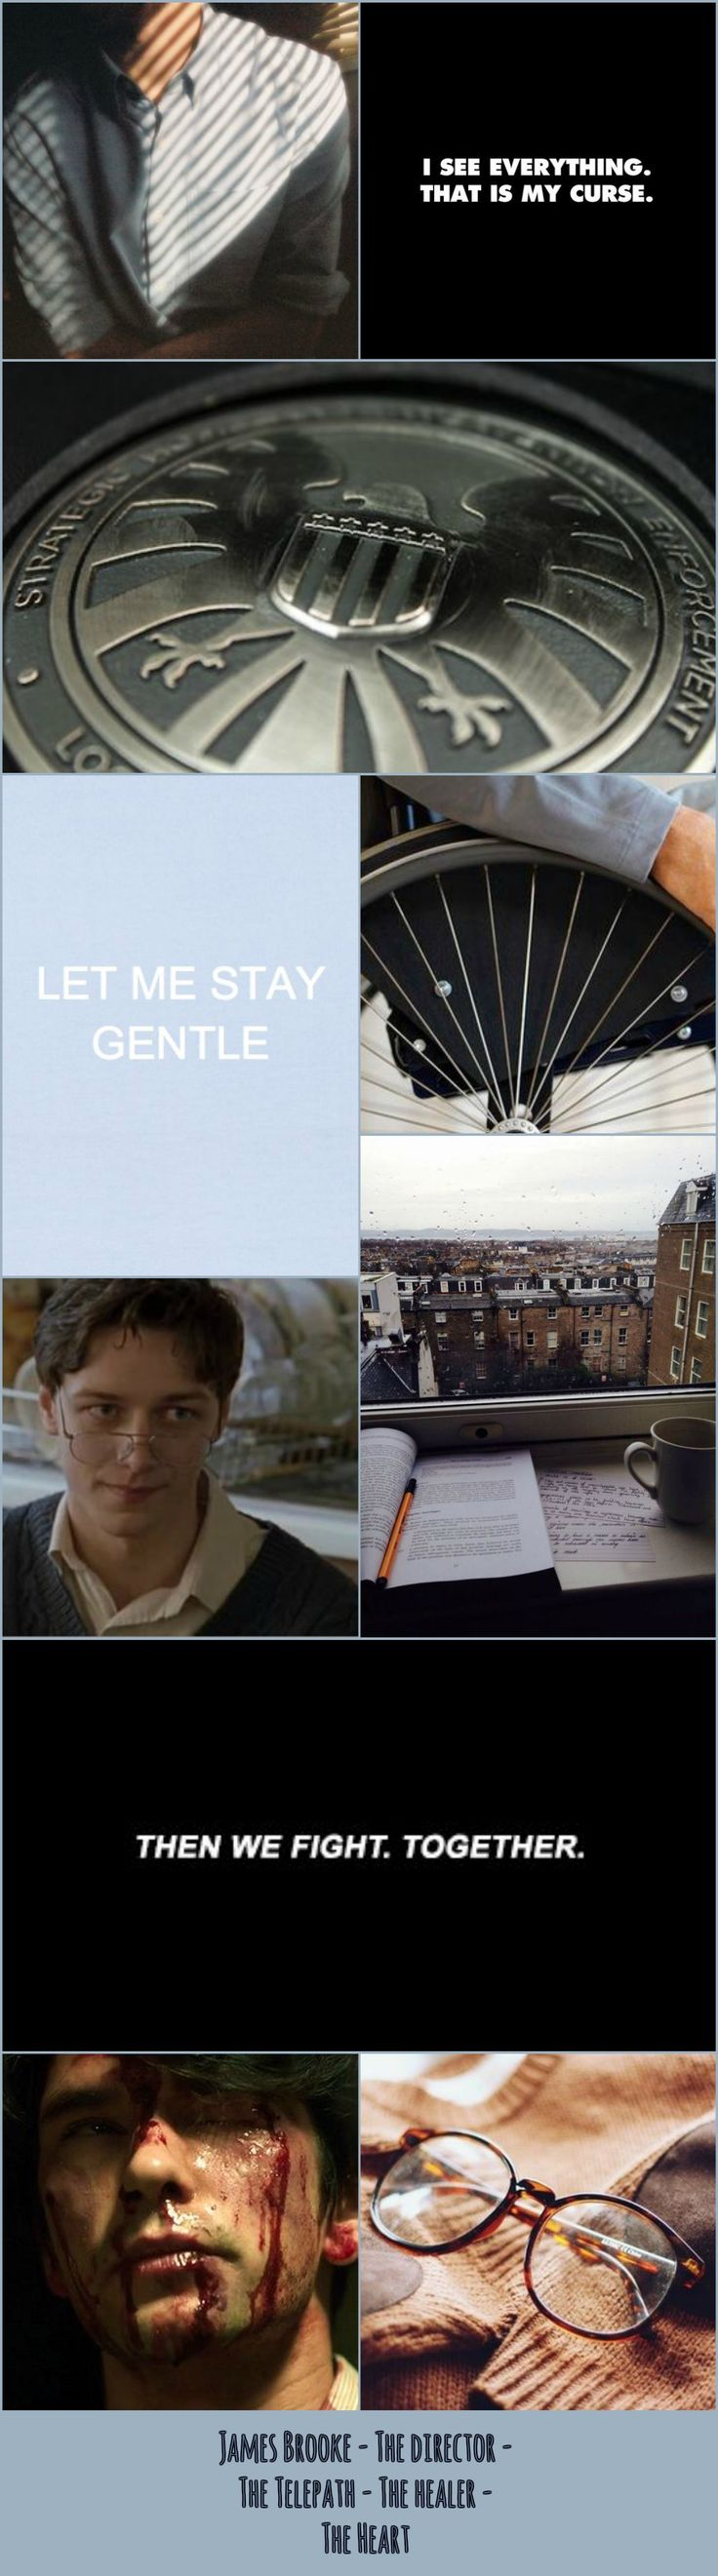 James Brooke collage. OC. Head of SHIELD, telepath, best friend to Sebastian Moran, healing the hearts of many, full of wise words, friend to all. (Collage credit @elizabethshoal. I did not take the pictures.)